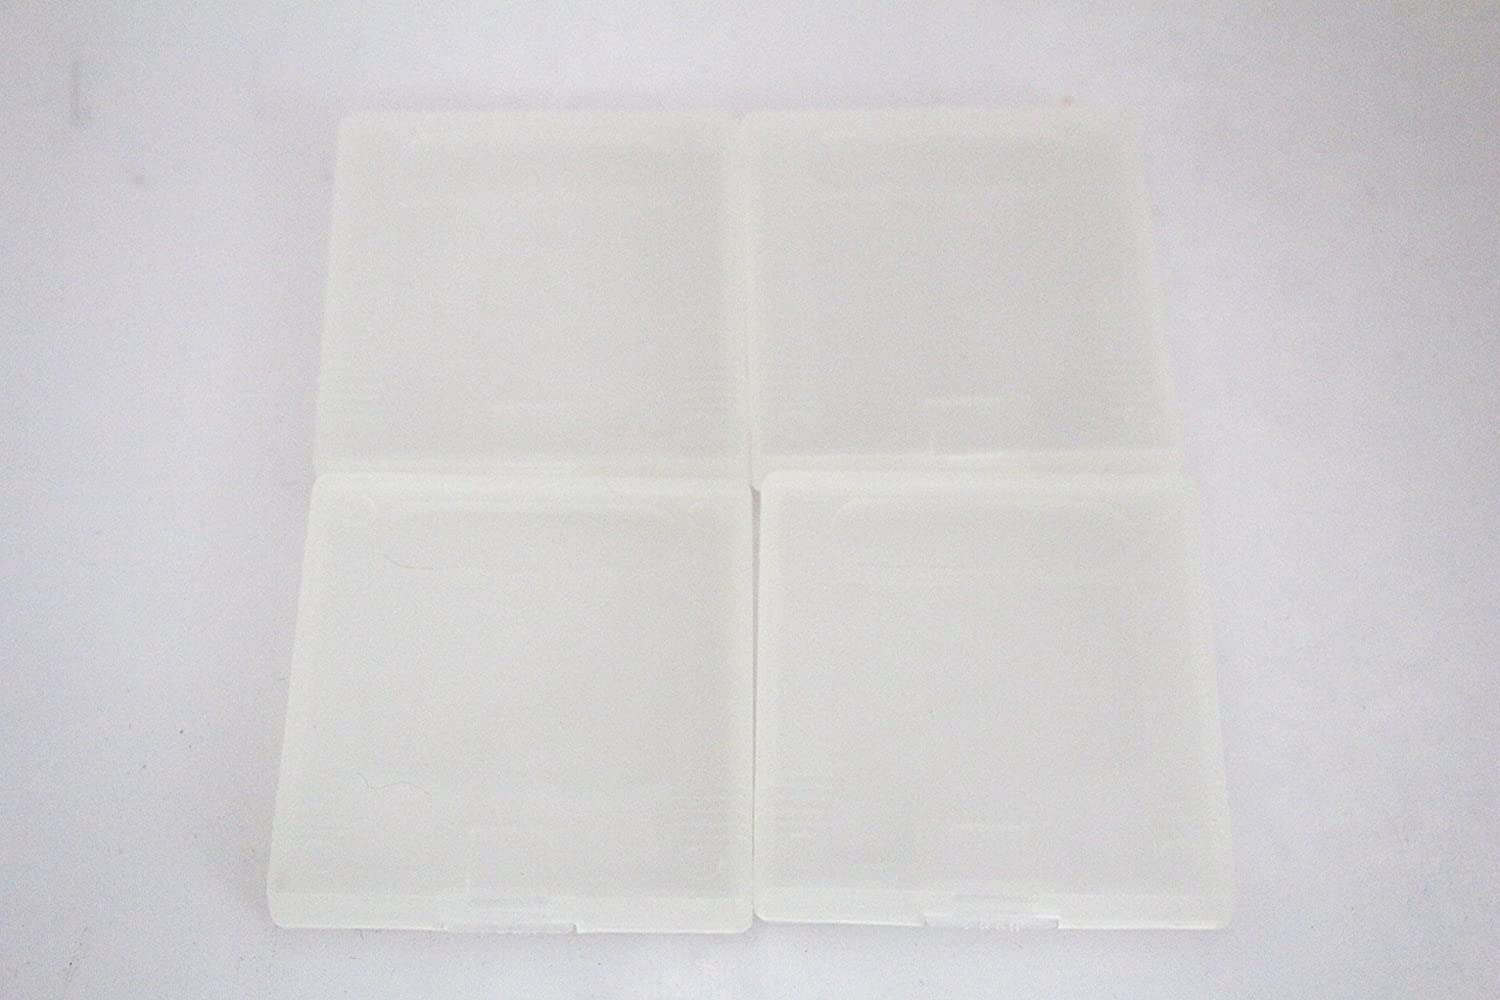 Game Boy Storage Dust Cover Protector Games Queue